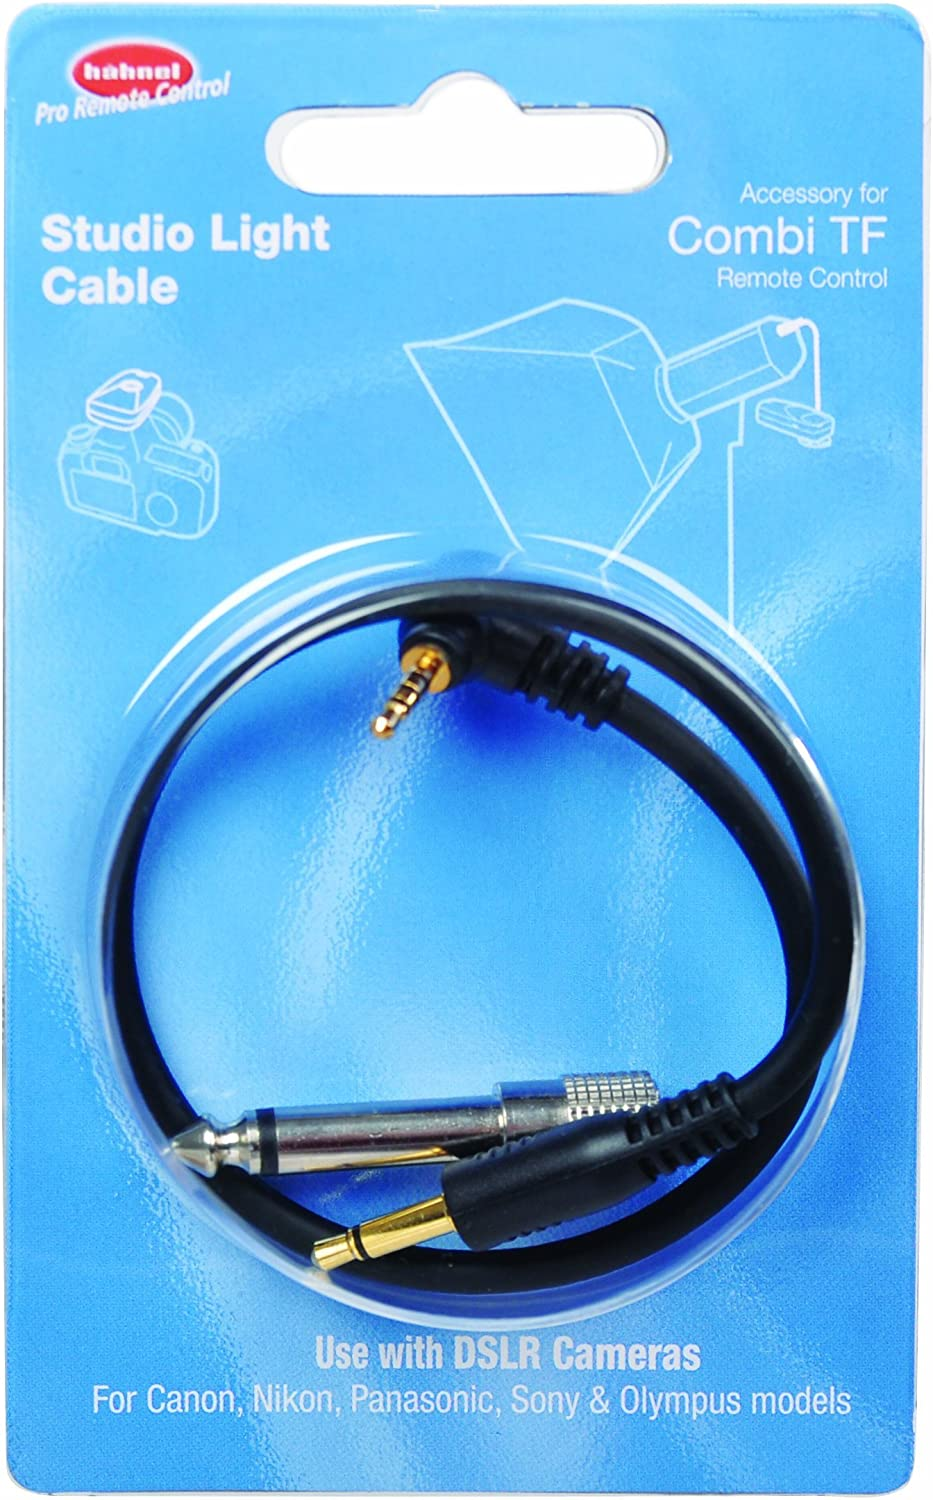 Hahnel Studio Light Cable for Combi TF Wireless Remote Control and Flash Trigger